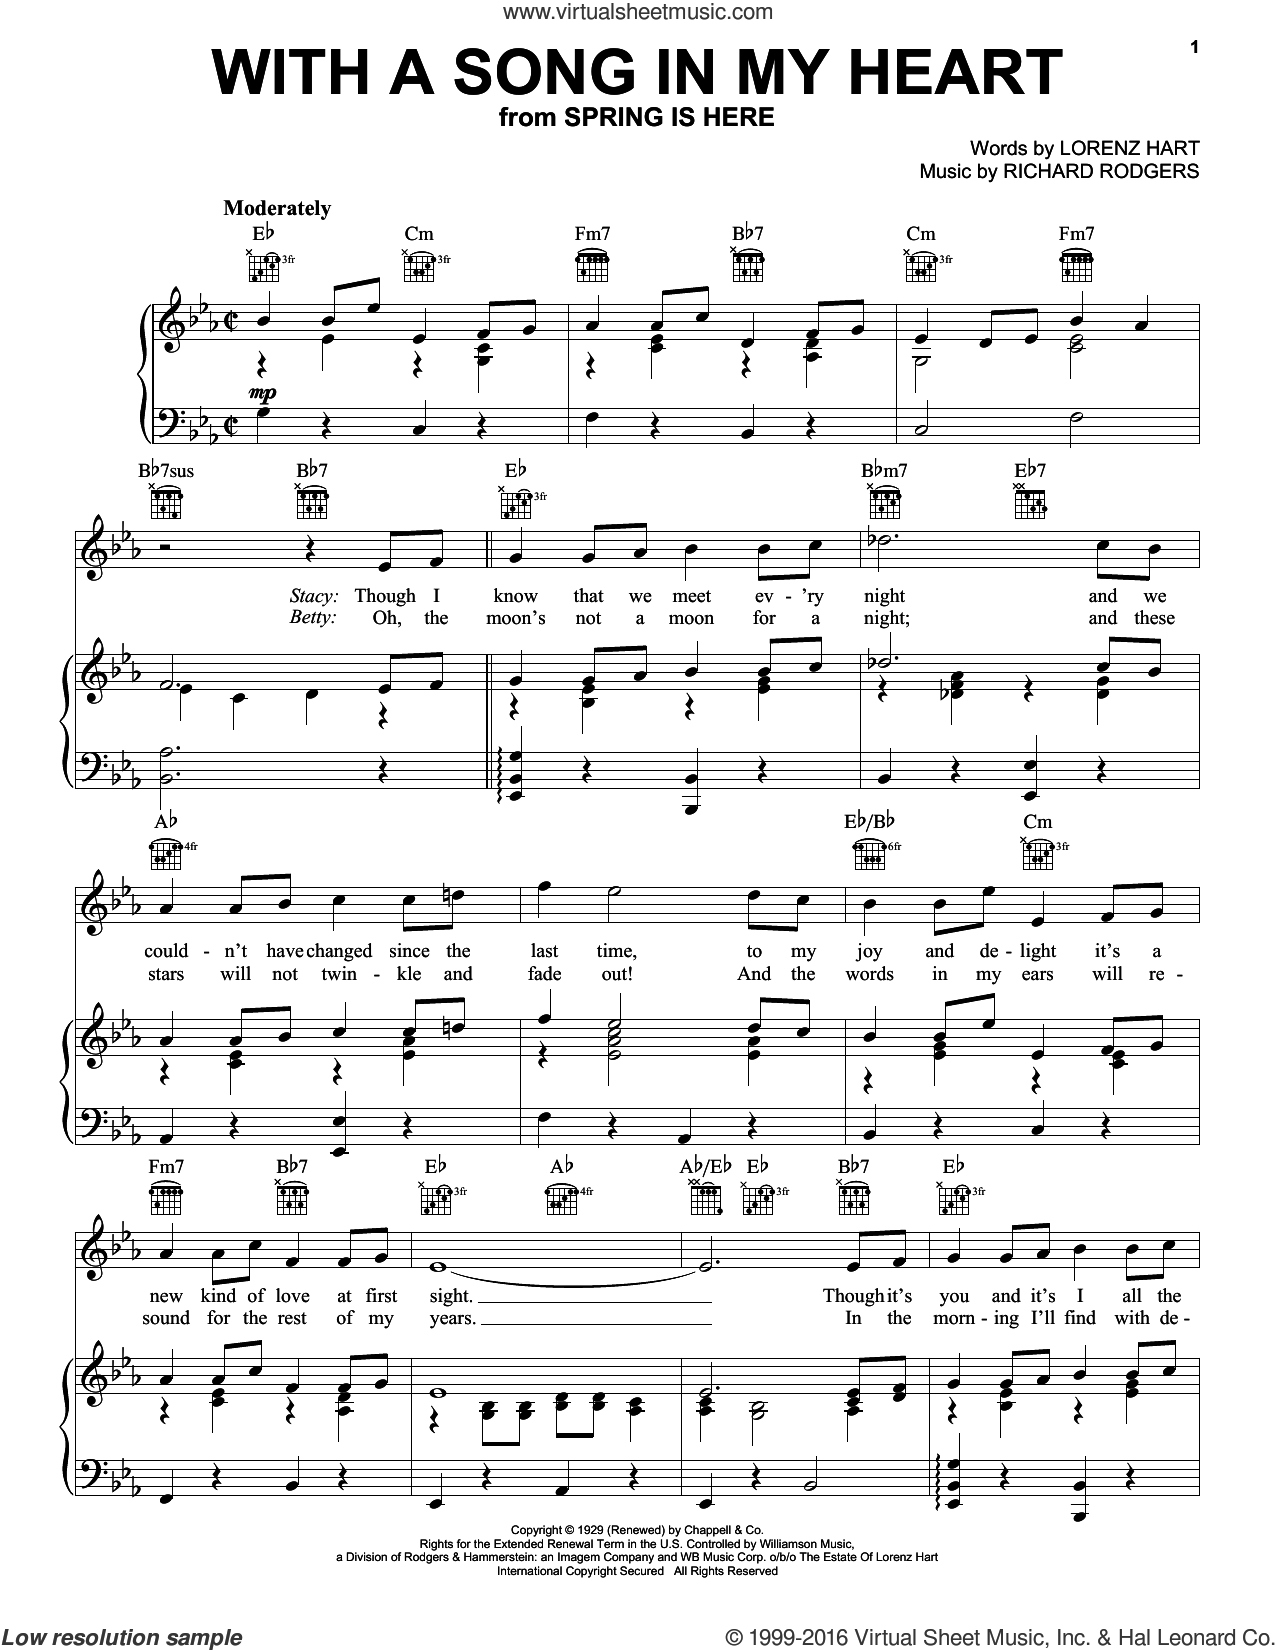 With A Song In My Heart sheet music for voice, piano or guitar by Richard Rodgers